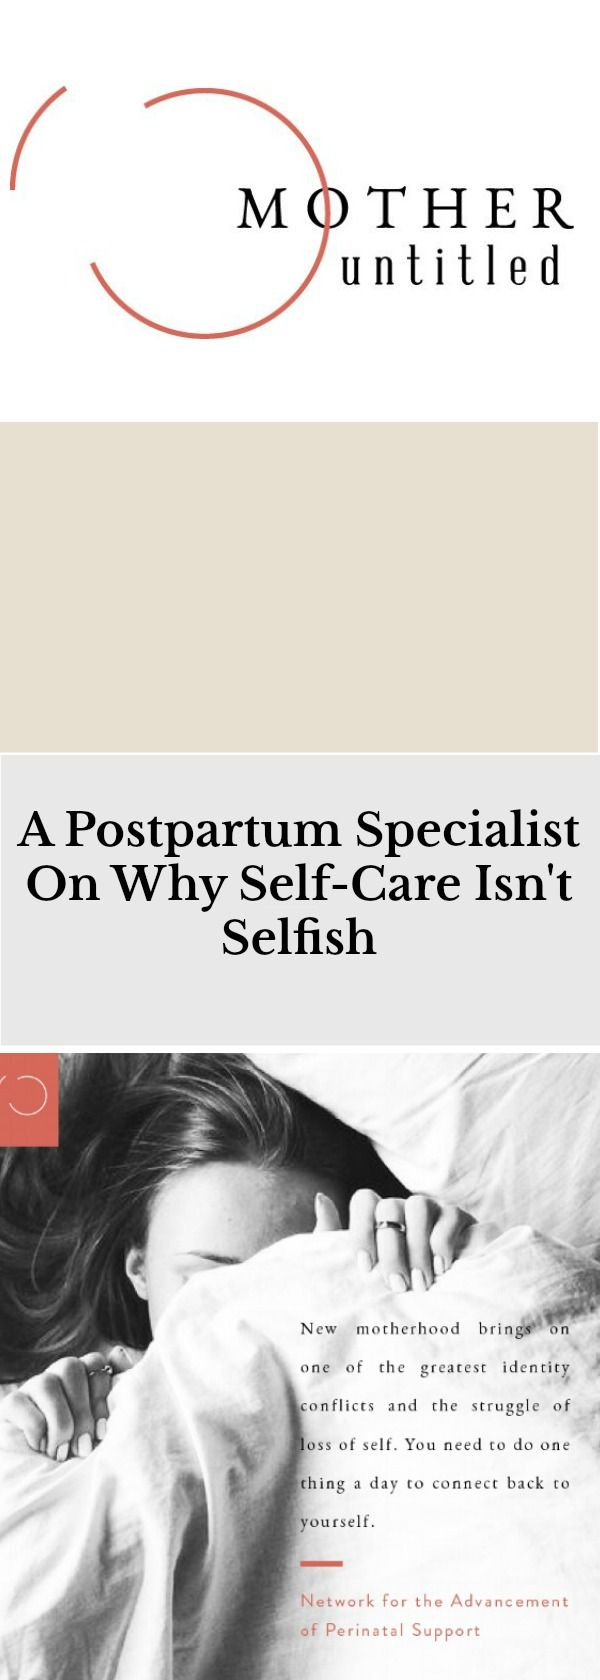 The team is working to change the high incidence of untreated postpartum illness by integrating maternal health care functions including assessment and intervention programs into OB offices, midwifery groups and fertility clinics. Golzar shares her thinking that taking good care of a mother's mental health begins with the basic principles of self-care.  #selfcare #motherhood